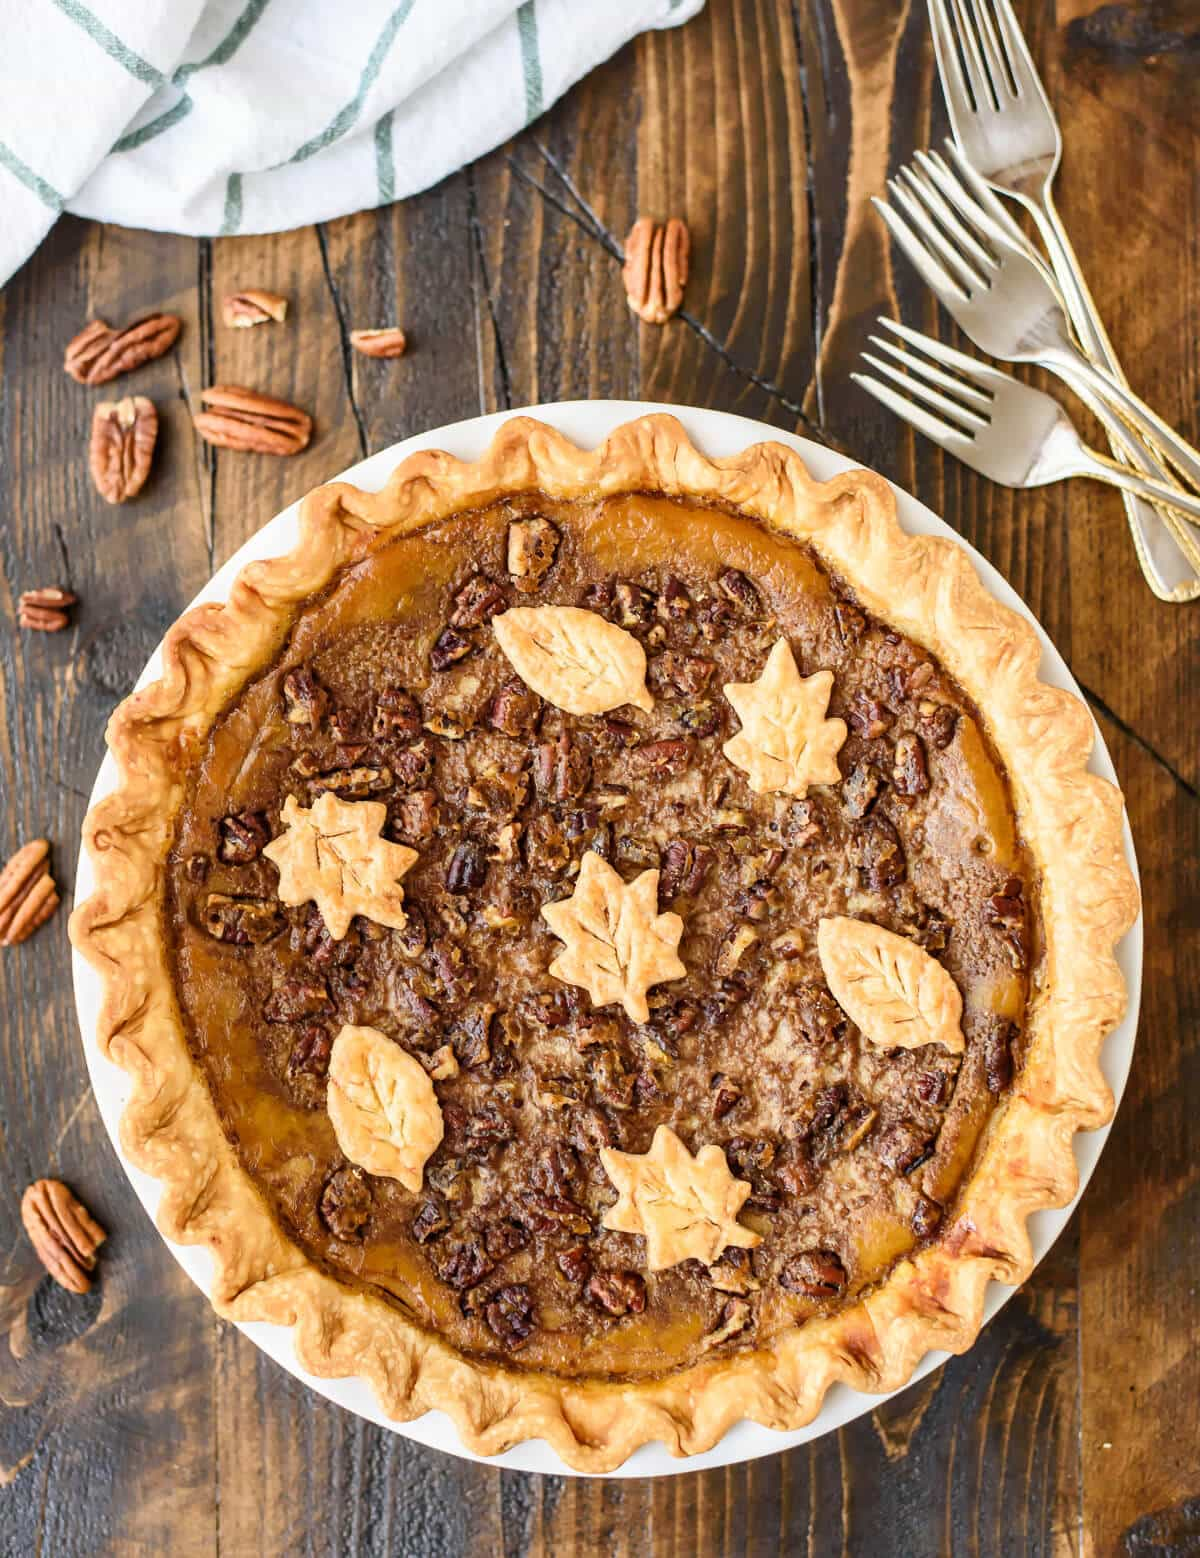 Perfect Pumpkin Pecan Pie, plus how to bake a perfect pumpkin pie that doesn't crack or burn!